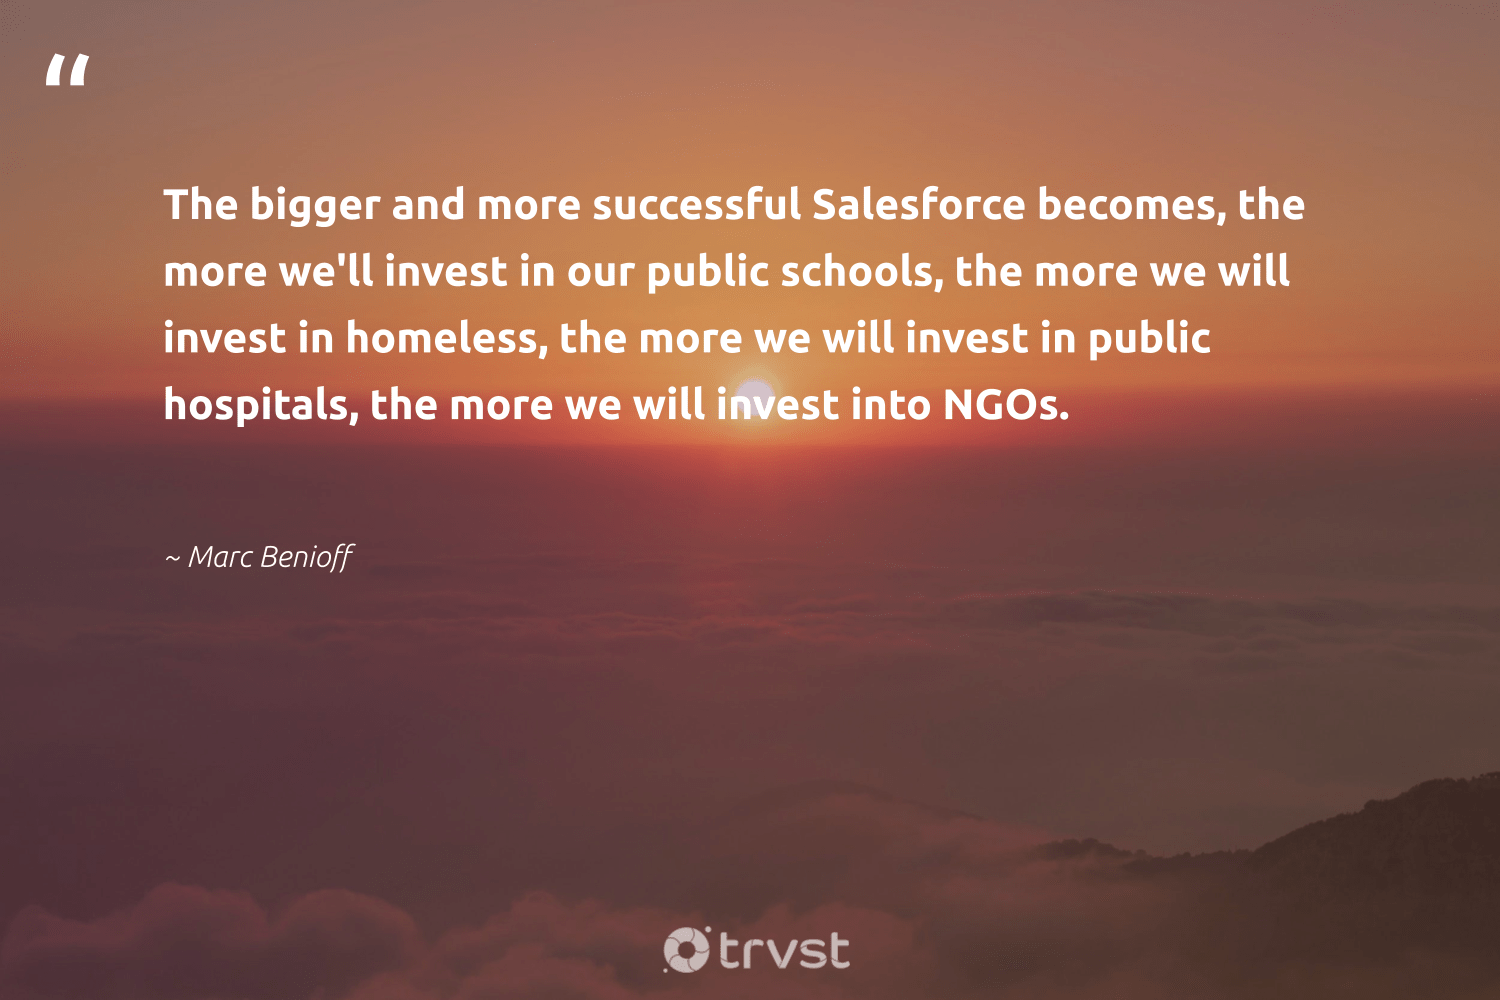 """""""The bigger and more successful Salesforce becomes, the more we'll invest in our public schools, the more we will invest in homeless, the more we will invest in public hospitals, the more we will invest into NGOs.""""  - Marc Benioff #trvst #quotes #homeless #homelessness #socialchange #makeadifference #dotherightthing #dogood #sustainablefutures #collectiveaction #sharedresponsibility #weareallone"""